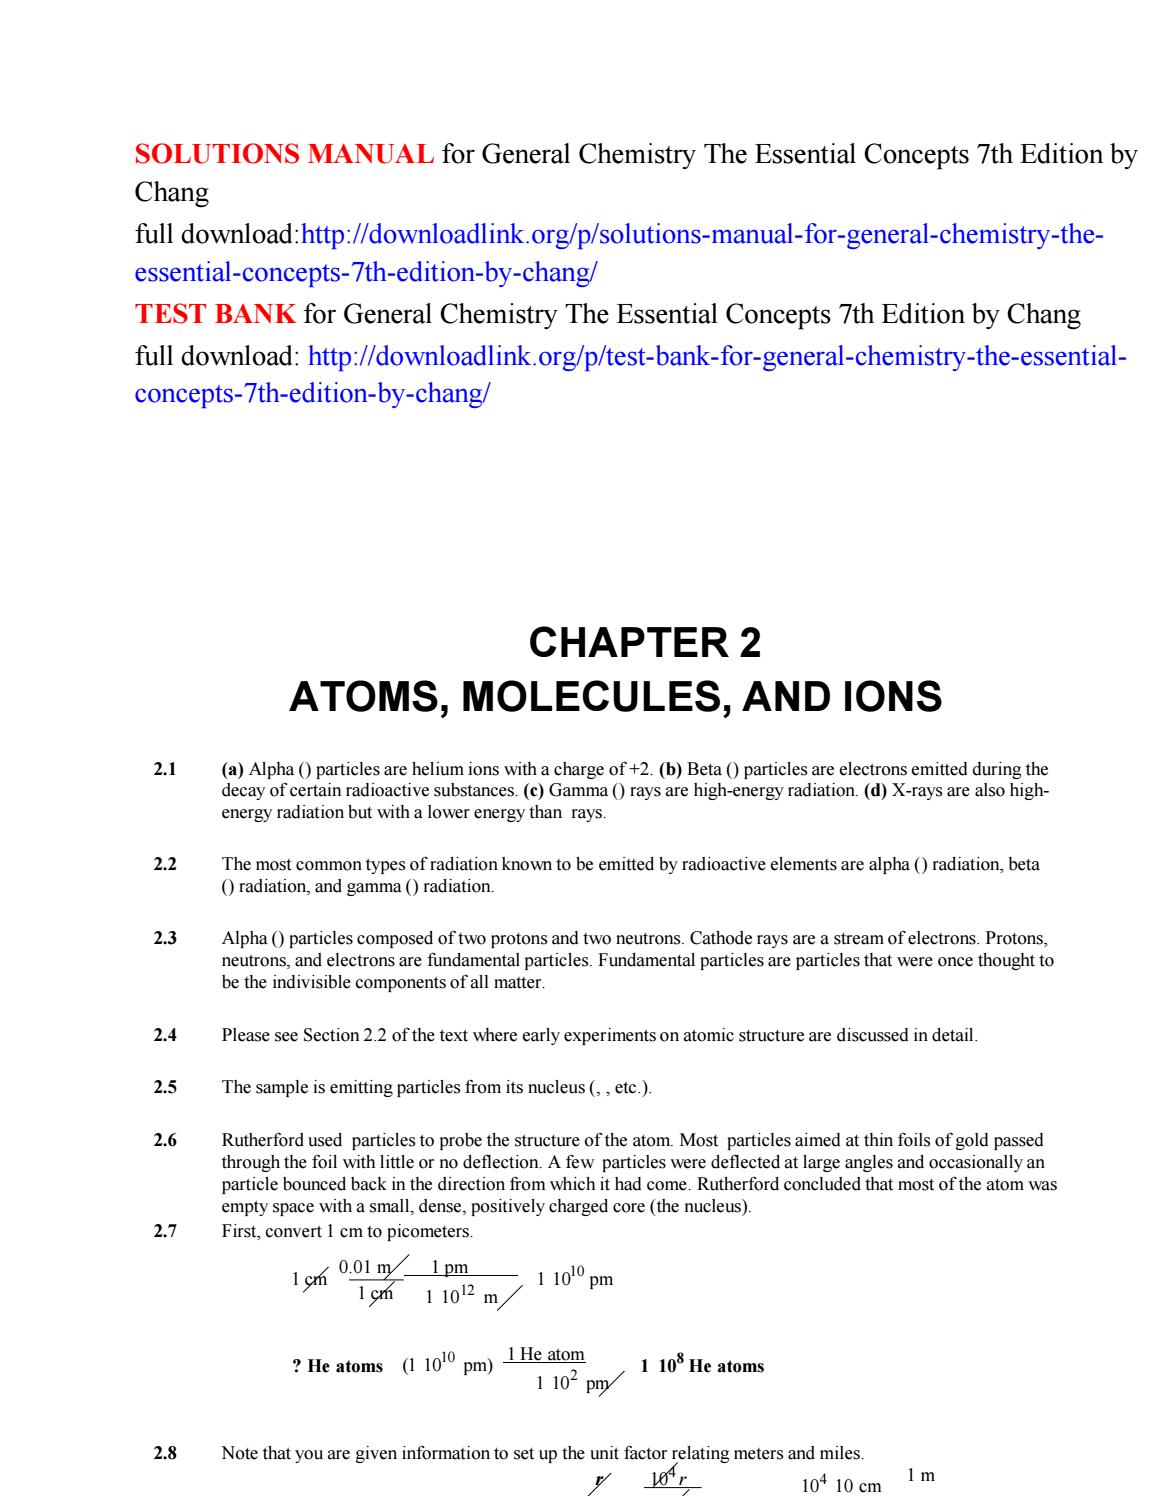 Solutions manual for general chemistry the essential concepts 7th edition  by chang by Mike223 - issuu